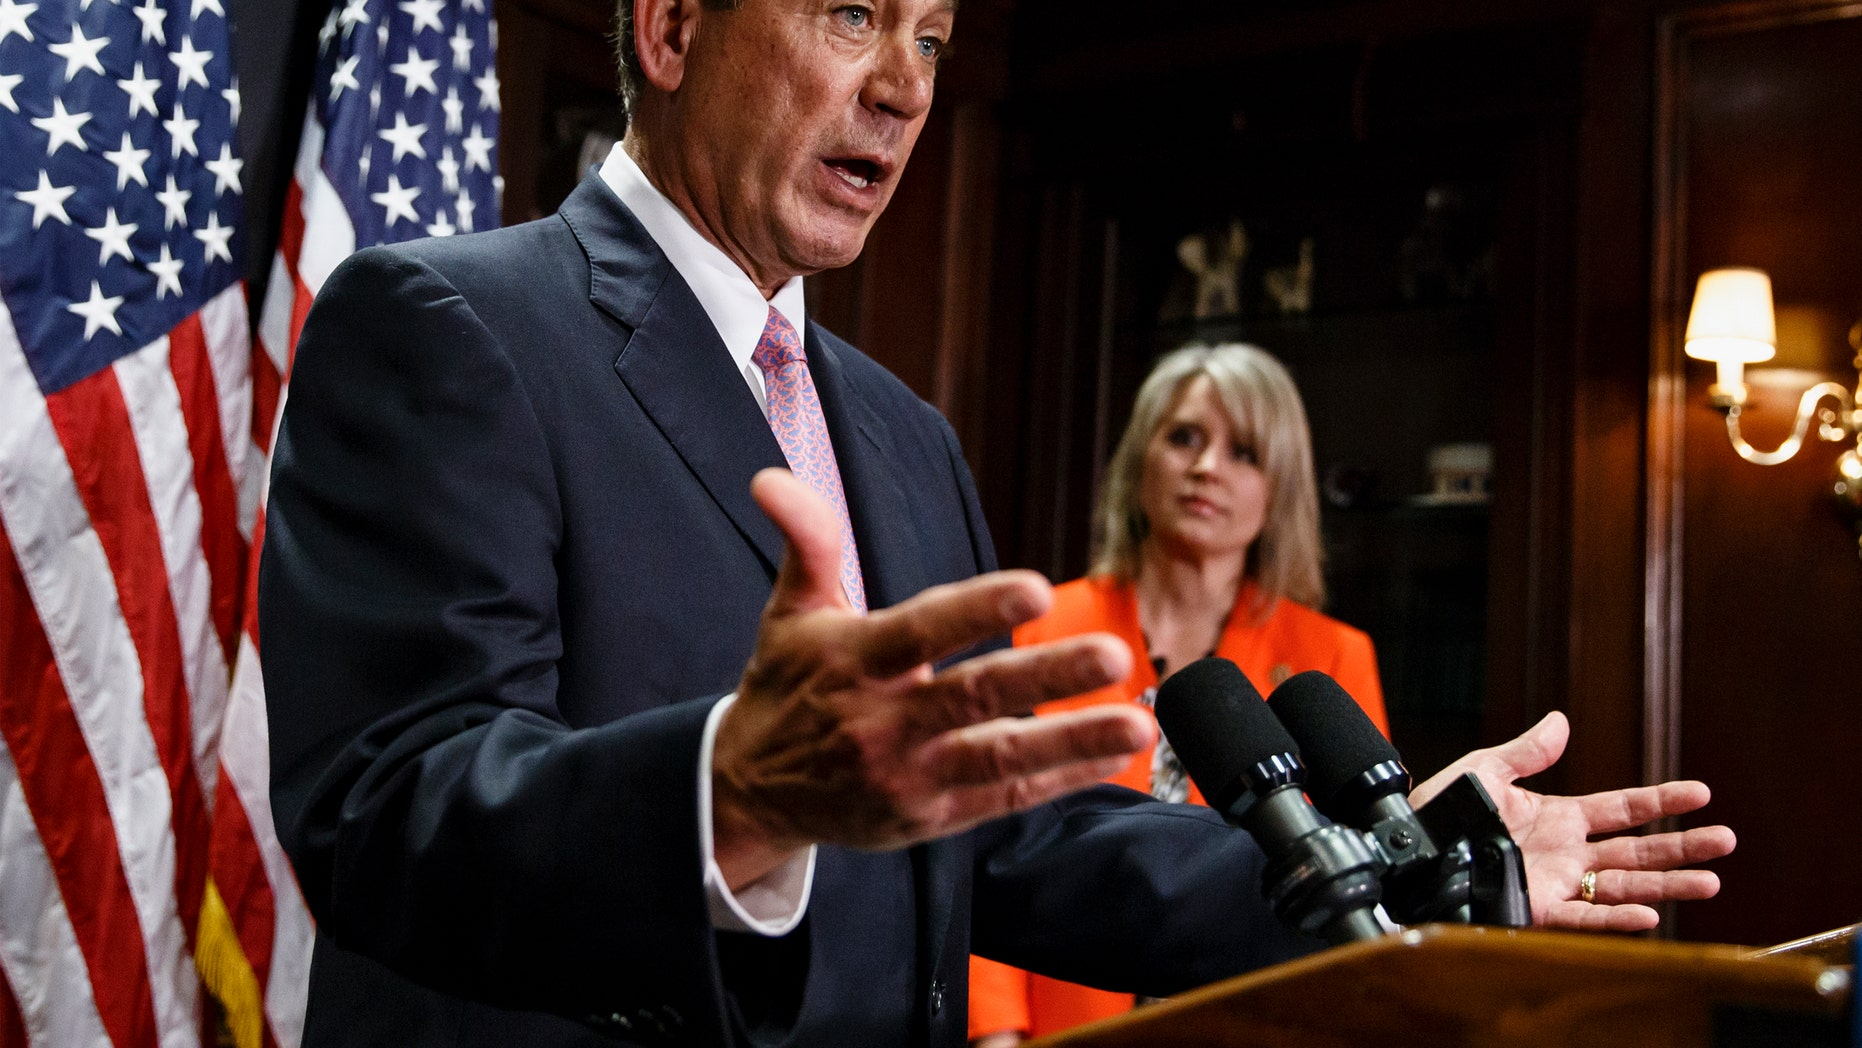 April 29, 2014: House Speaker John Boehner of Ohio, joined by Rep. Renee Ellmers, R-N.C., talks to reporters following a Republican strategy meeting on Capitol Hill in Washington.